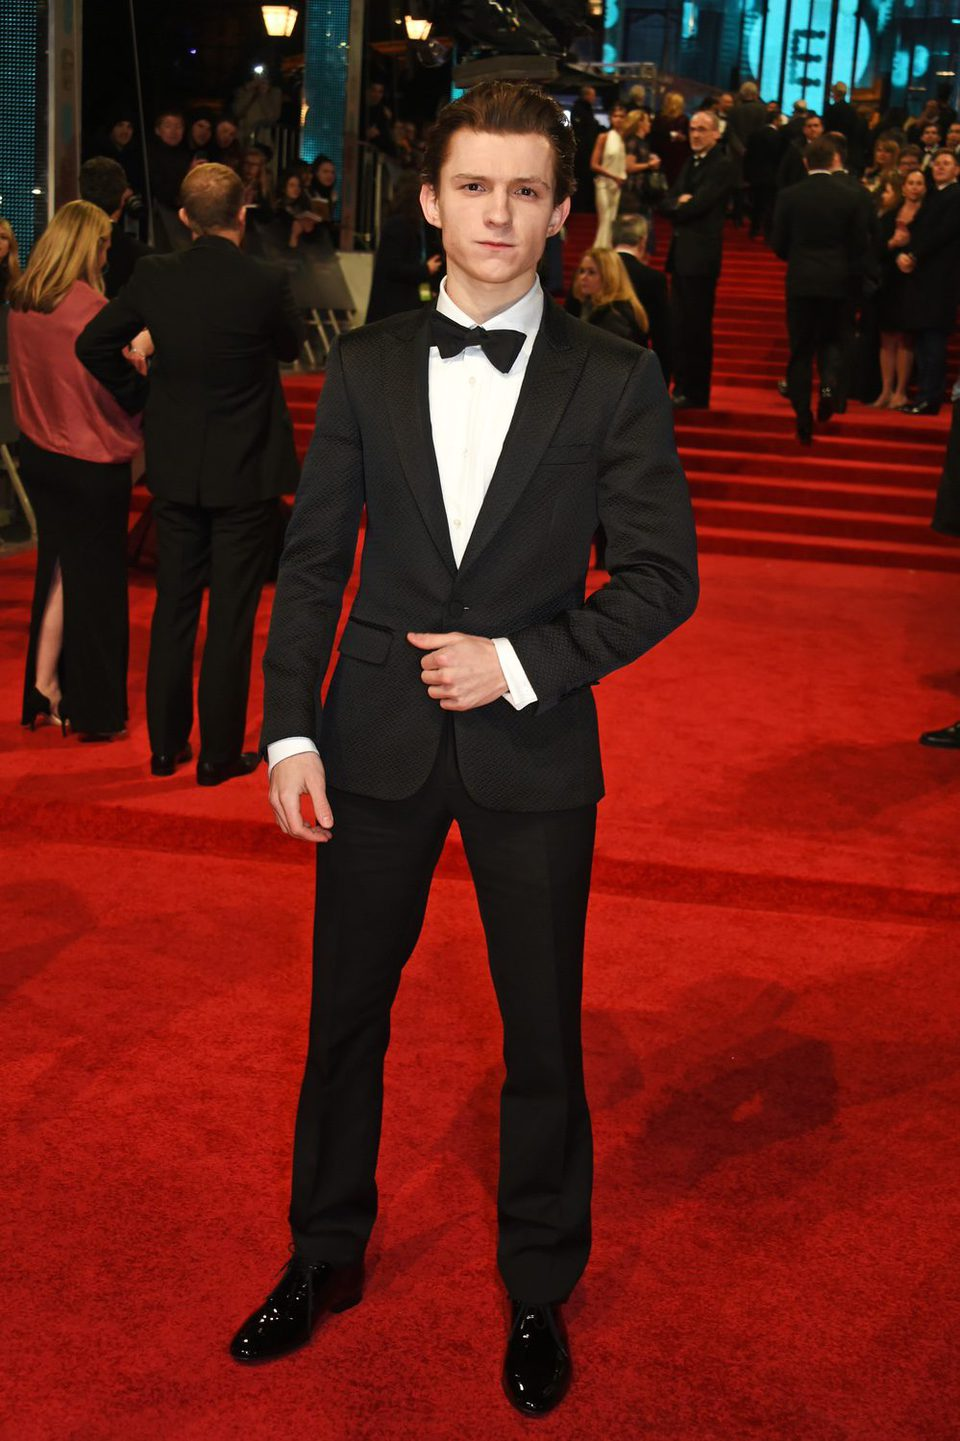 The star of 'Spider-Man: Homecoming', Tom Holland, at BAFTA 2017